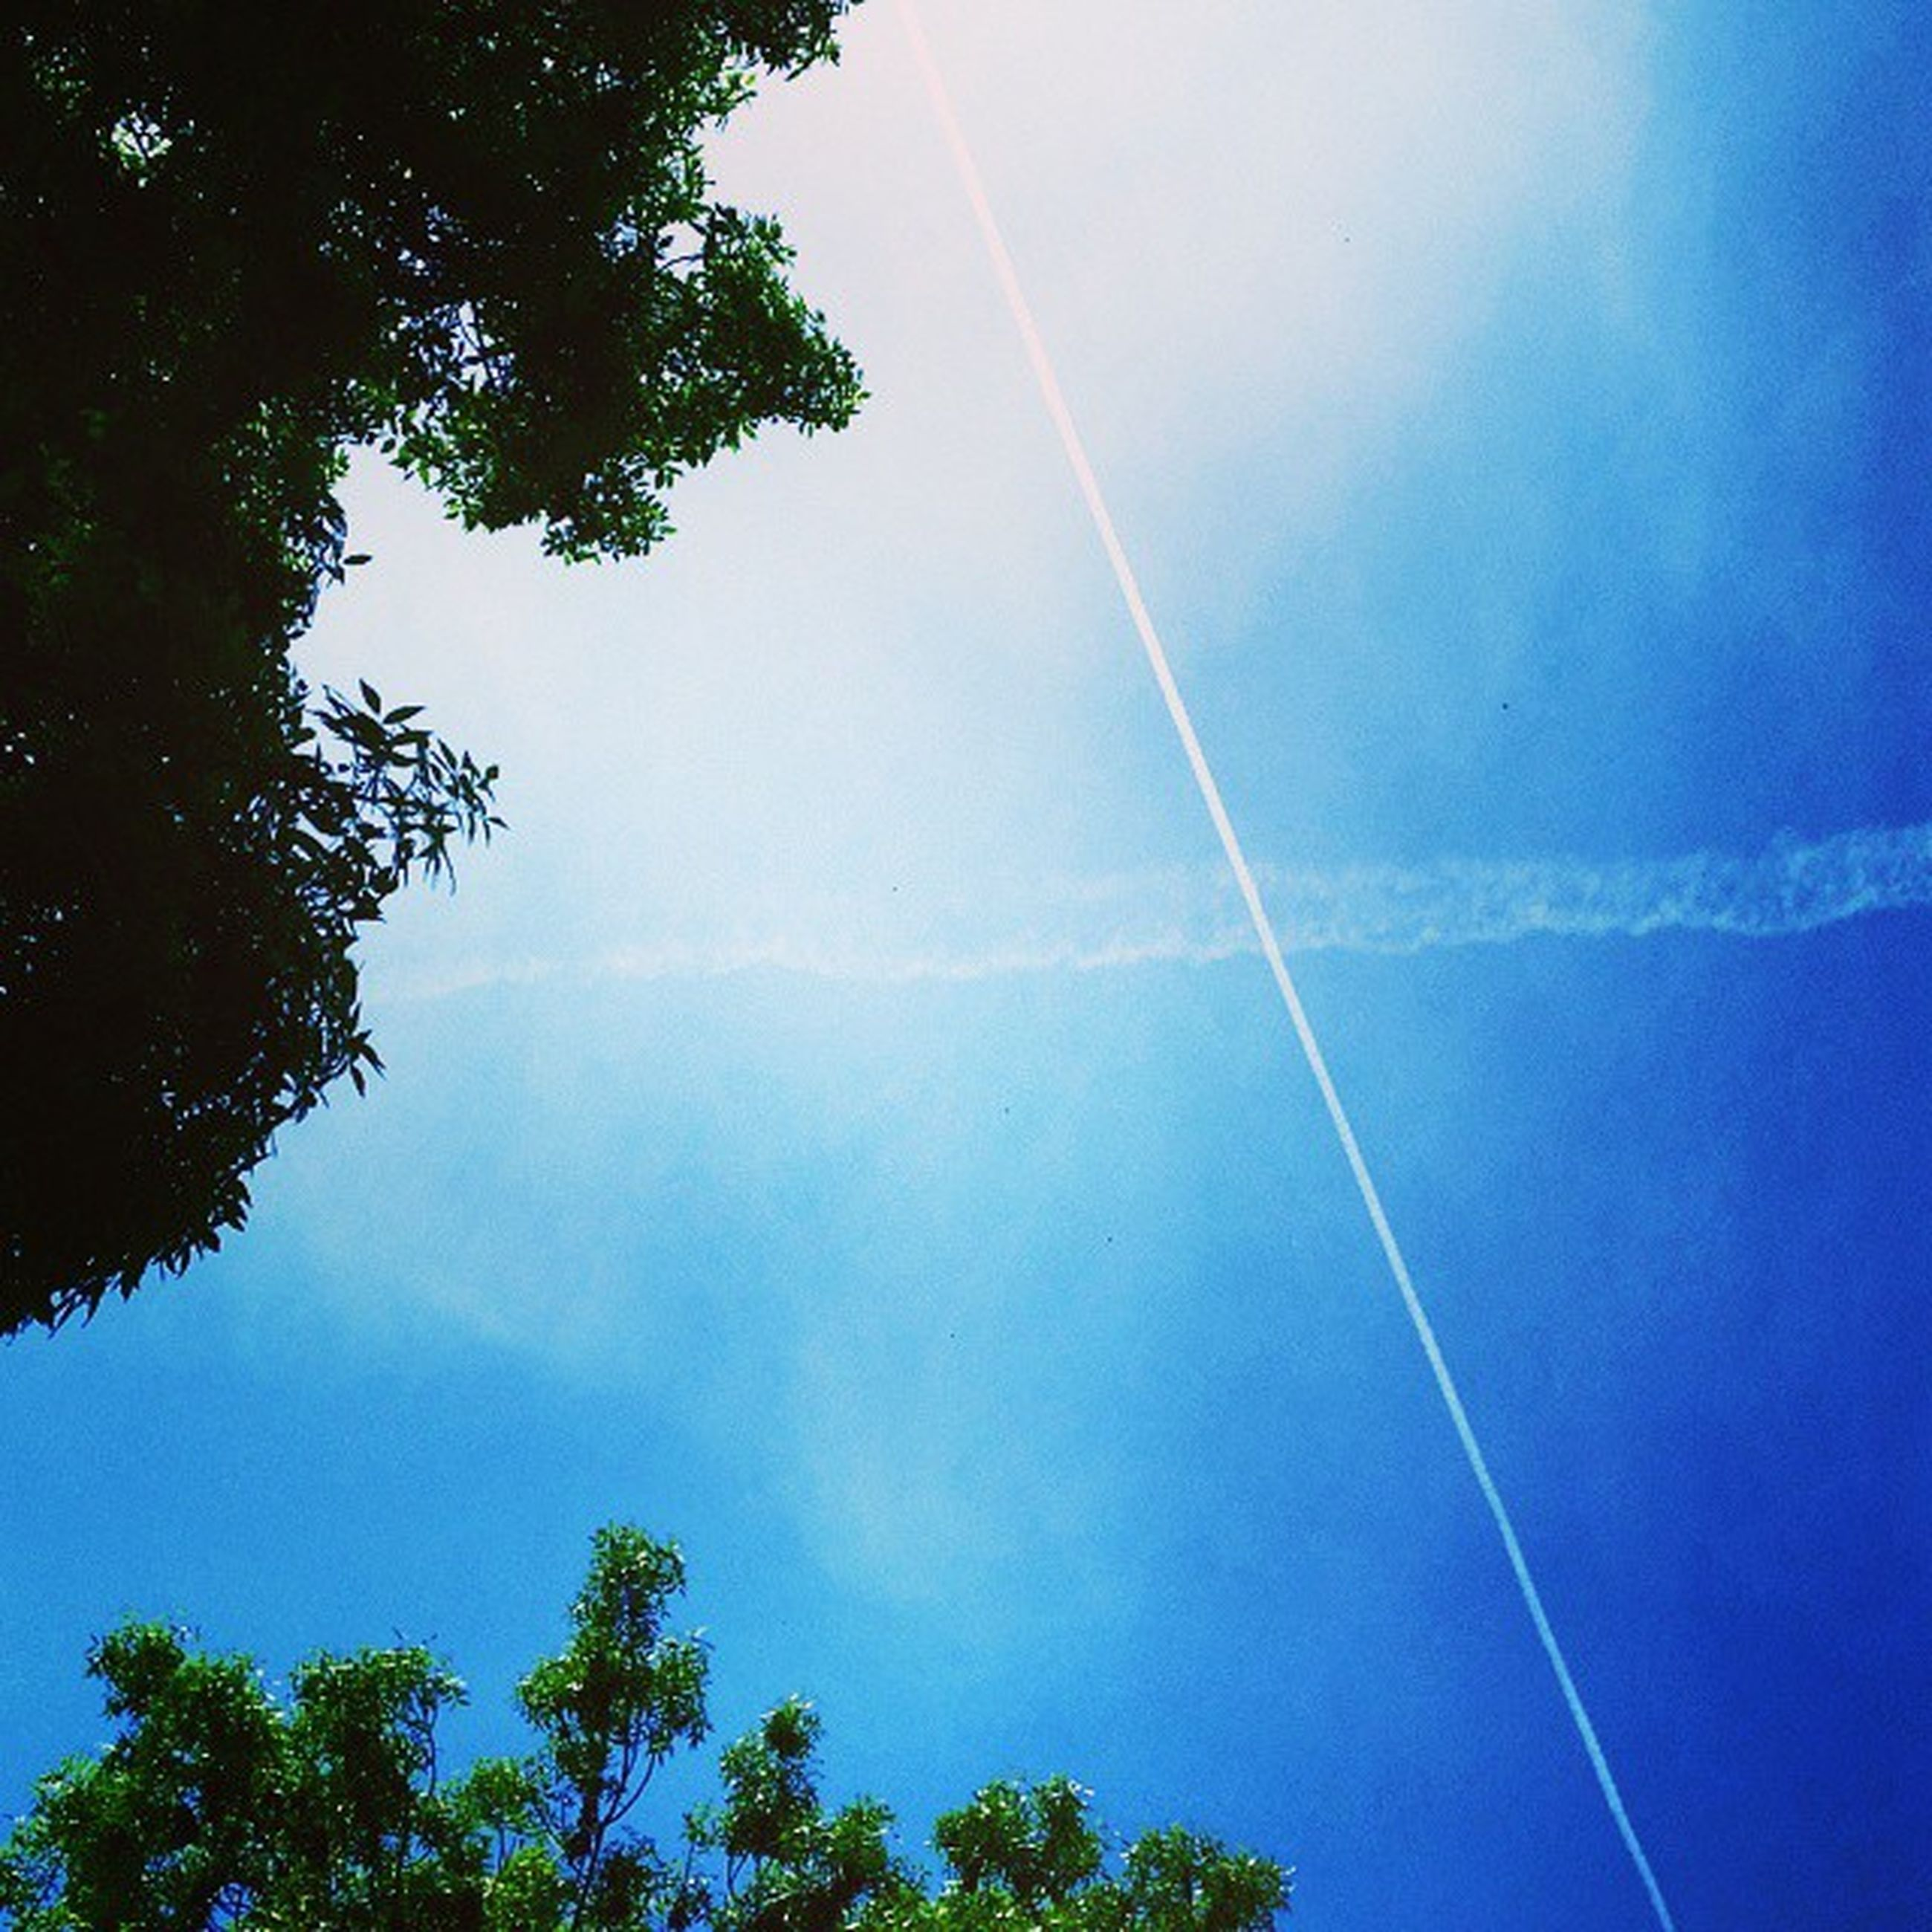 tree, low angle view, sky, tranquility, vapor trail, scenics, blue, beauty in nature, tranquil scene, nature, cloud - sky, idyllic, treetop, outdoors, cloud, day, no people, power line, majestic, growth